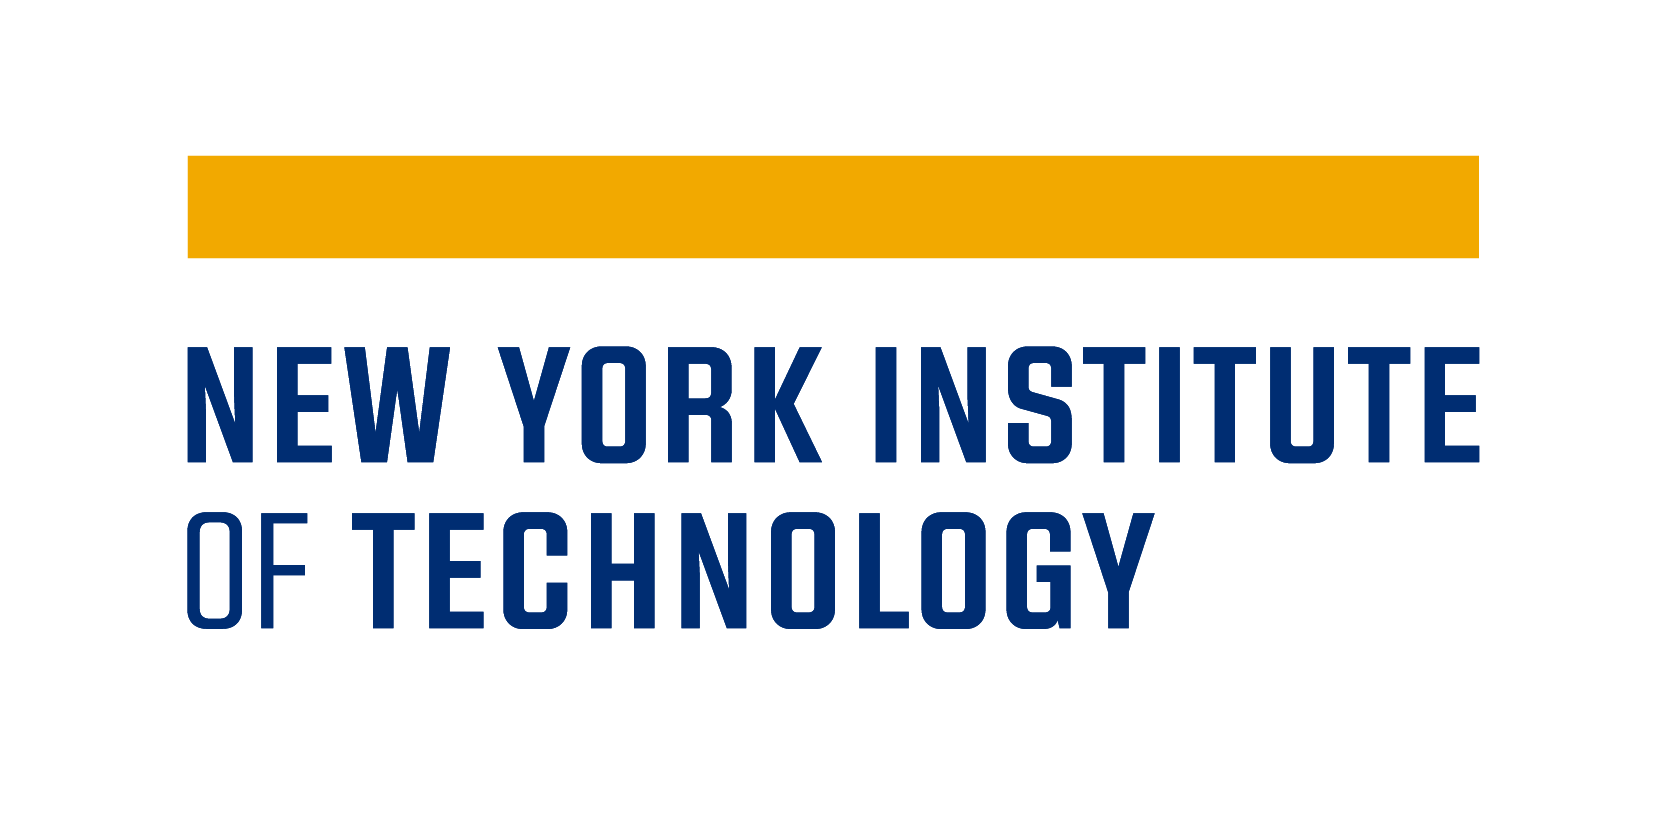 New institute of technology email logo